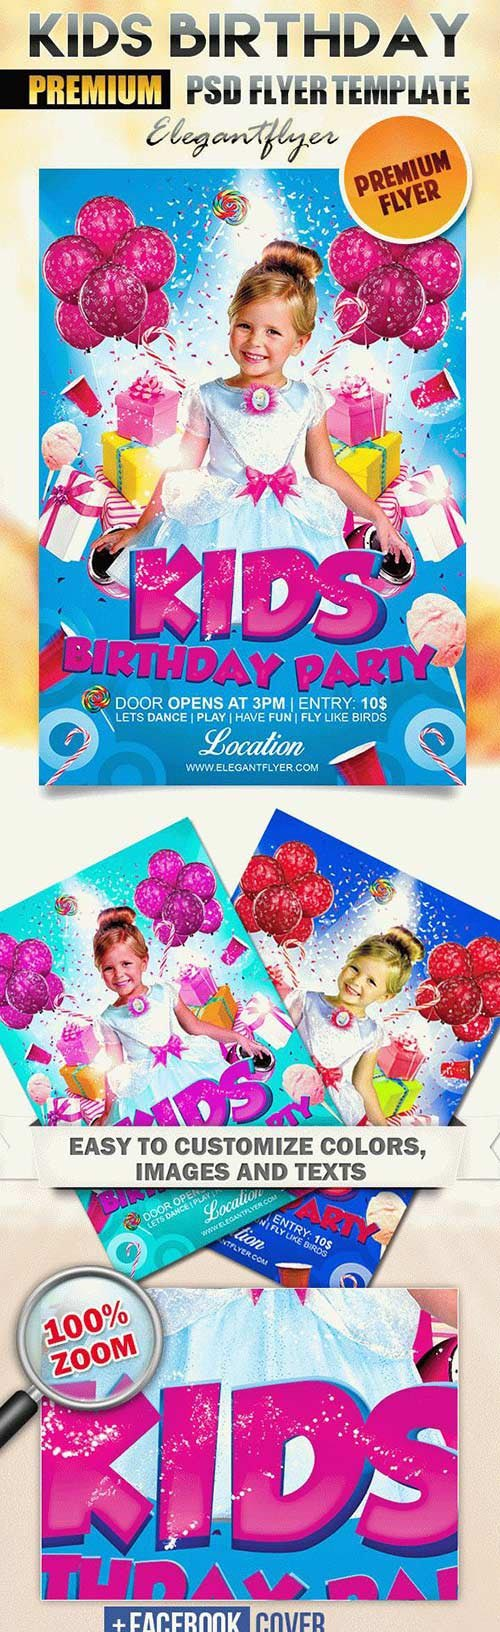 Kids Birthday Party Flyer PSD Template